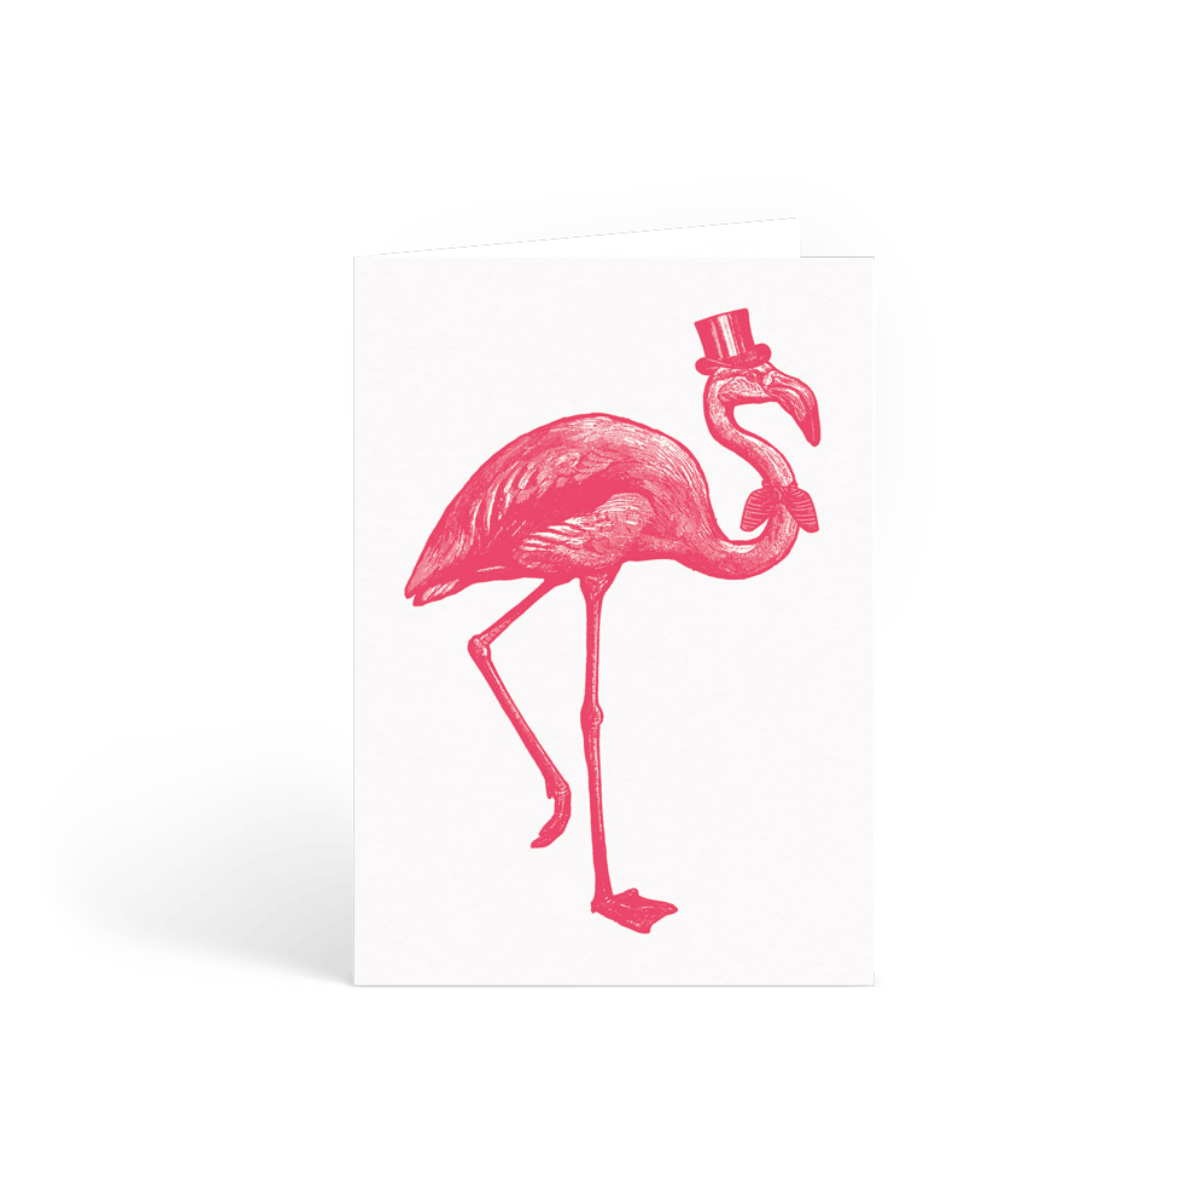 Https%3a%2f%2fwww.papier.com%2fproduct image%2f12959%2f2%2fsophisticated flamingo 3268 avant 1477920848.png?ixlib=rb 1.1